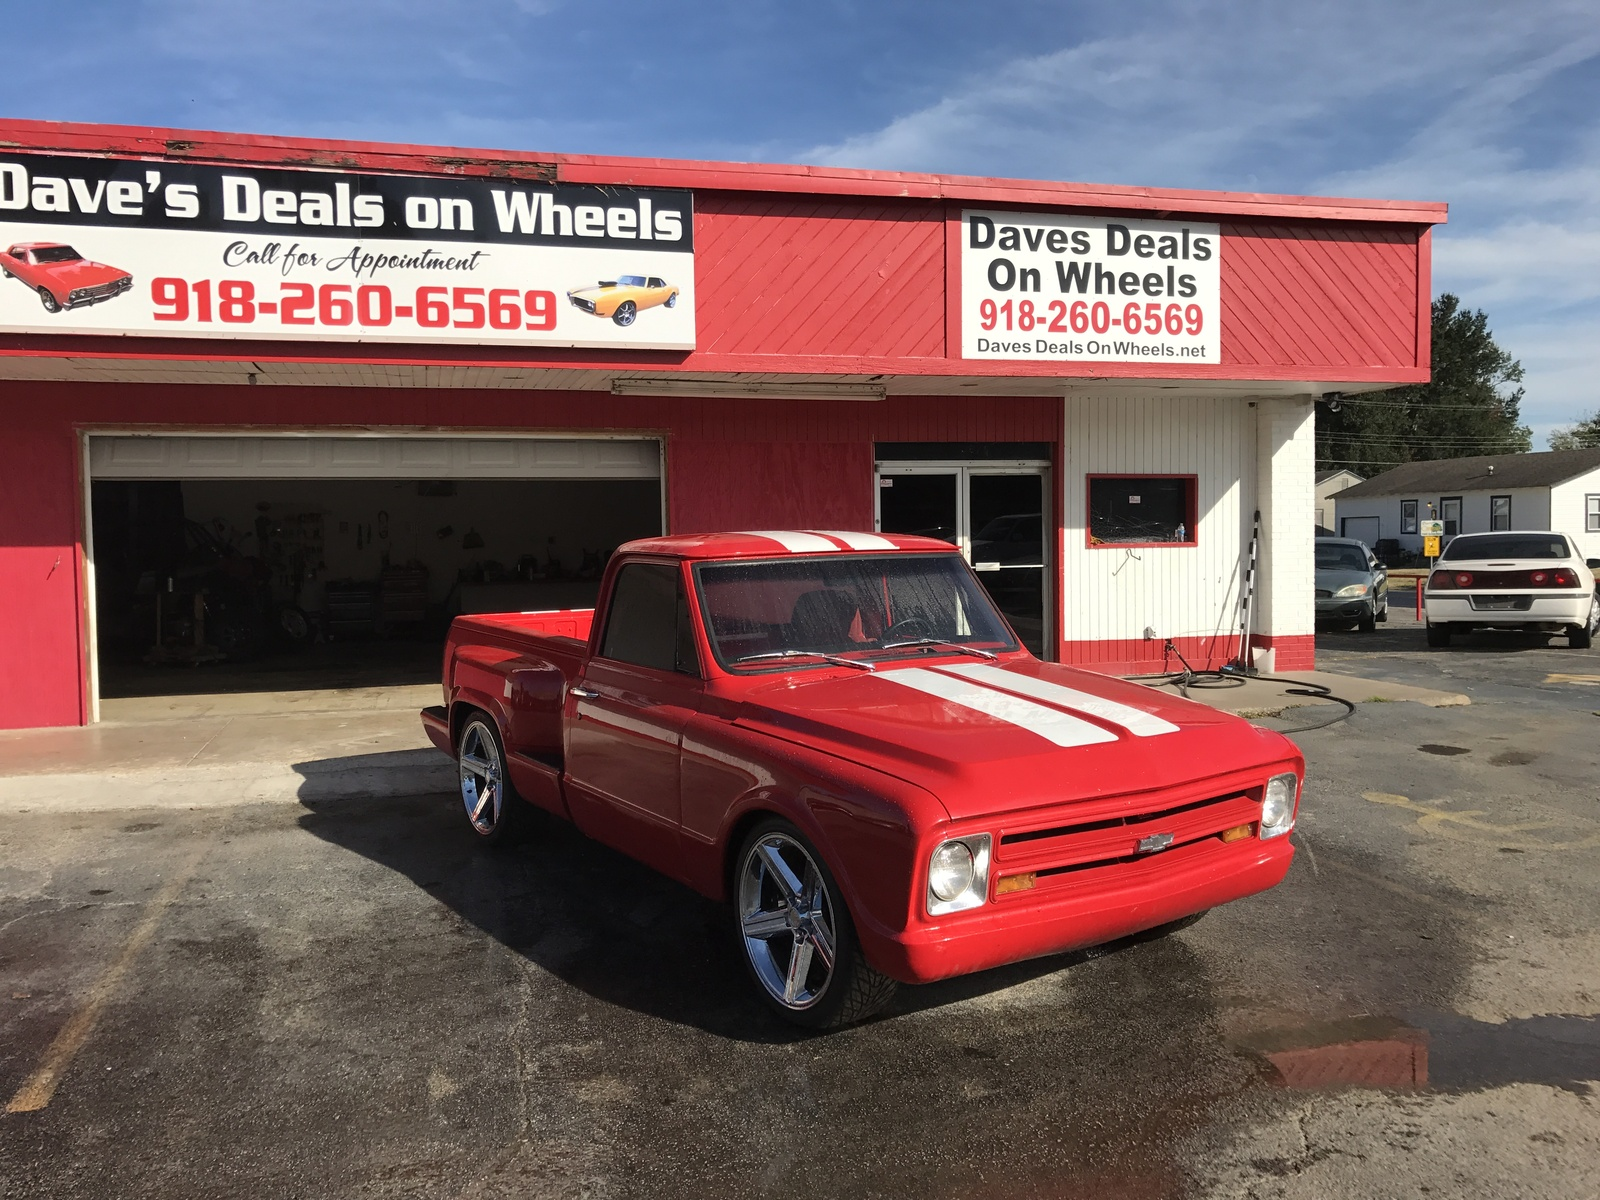 new wheels auto sales used cars lansing mi dealer sexy girl and car photos. Black Bedroom Furniture Sets. Home Design Ideas